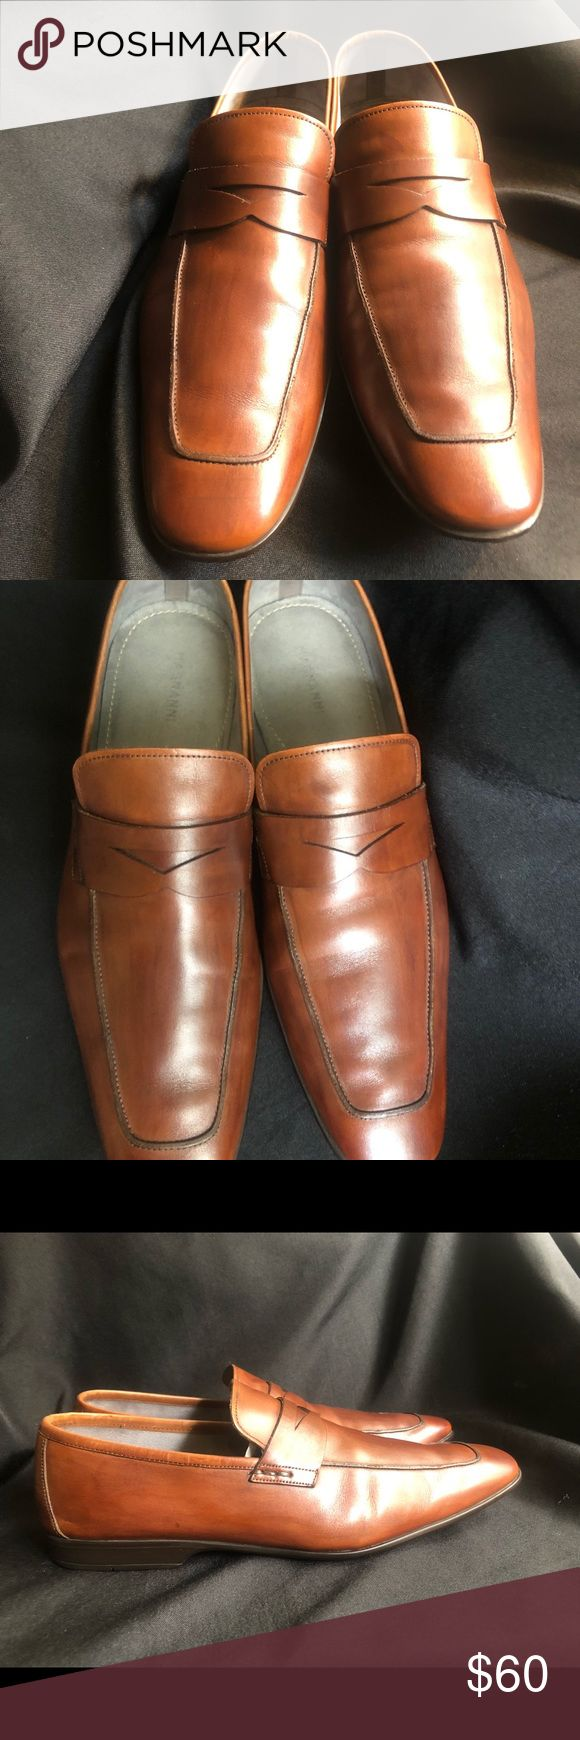 Magnanni Penny Loafers Made in Spain Size 11.5M Magnanni Brown Penny Loafers Mad...